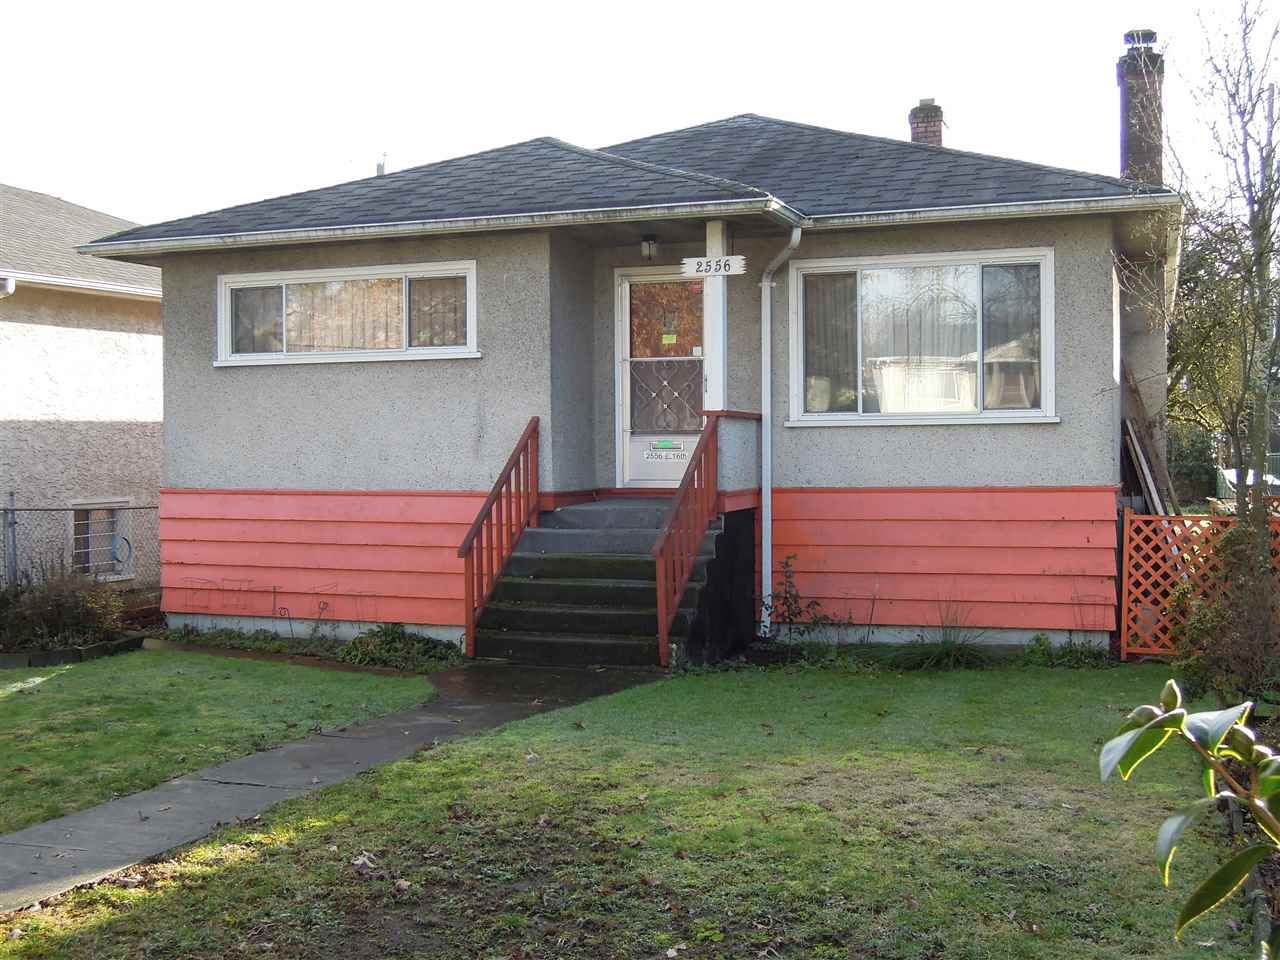 Main Photo: 2556 E16th Ave in Vancouver: Renfrew Heights House for sale (Vancouver East)  : MLS®# R2232621